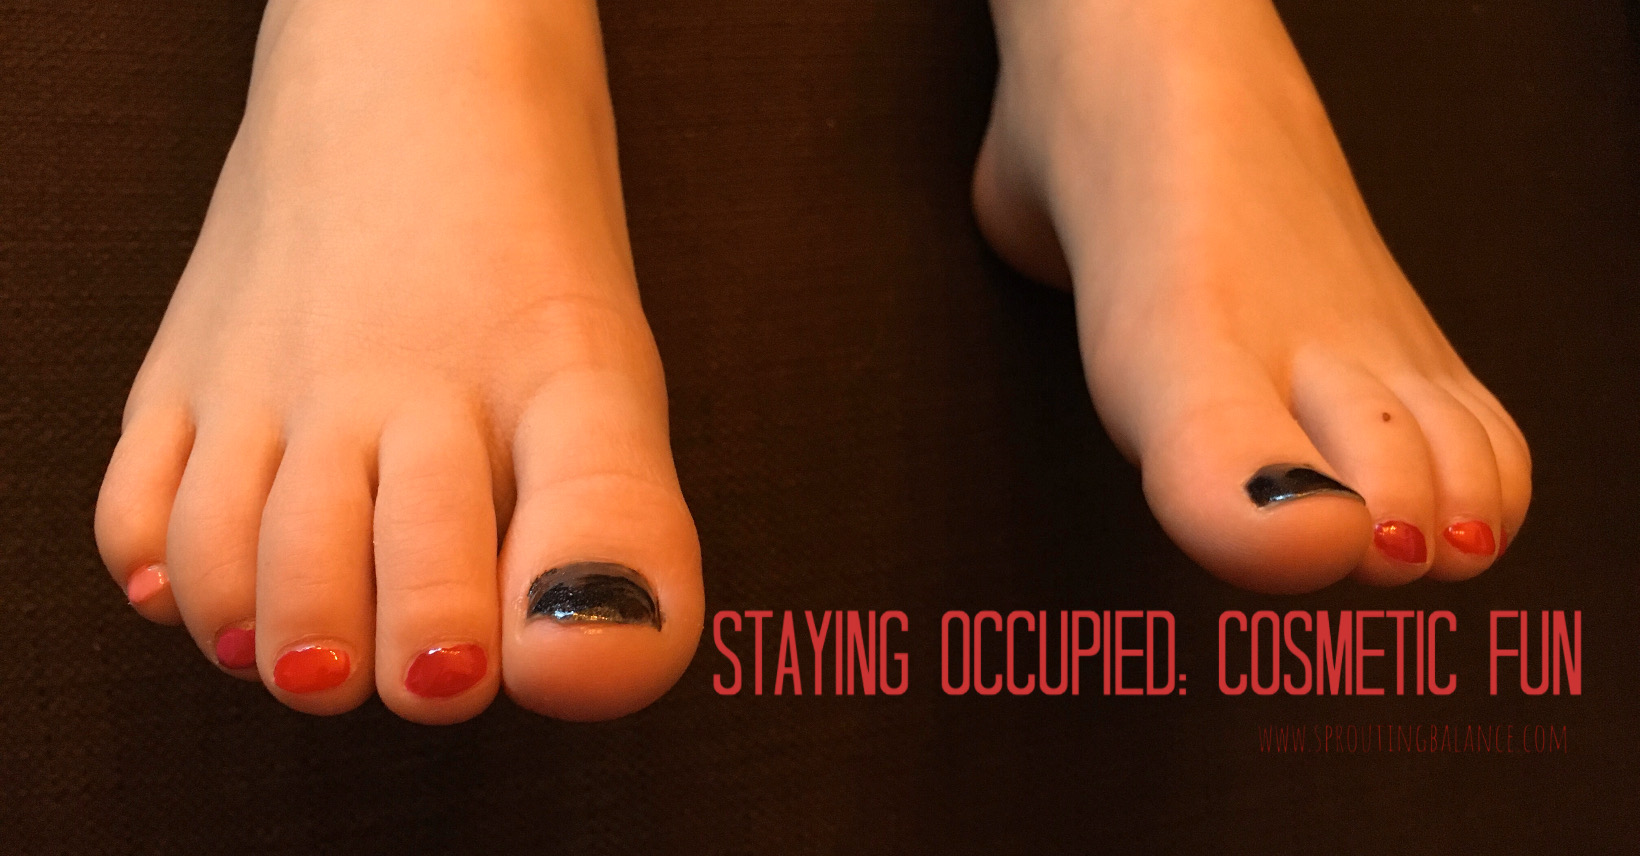 Staying Occupied: Cosmetic Fun | www.sproutingbalance.com | #stayhome #socialdistancing #bepositive